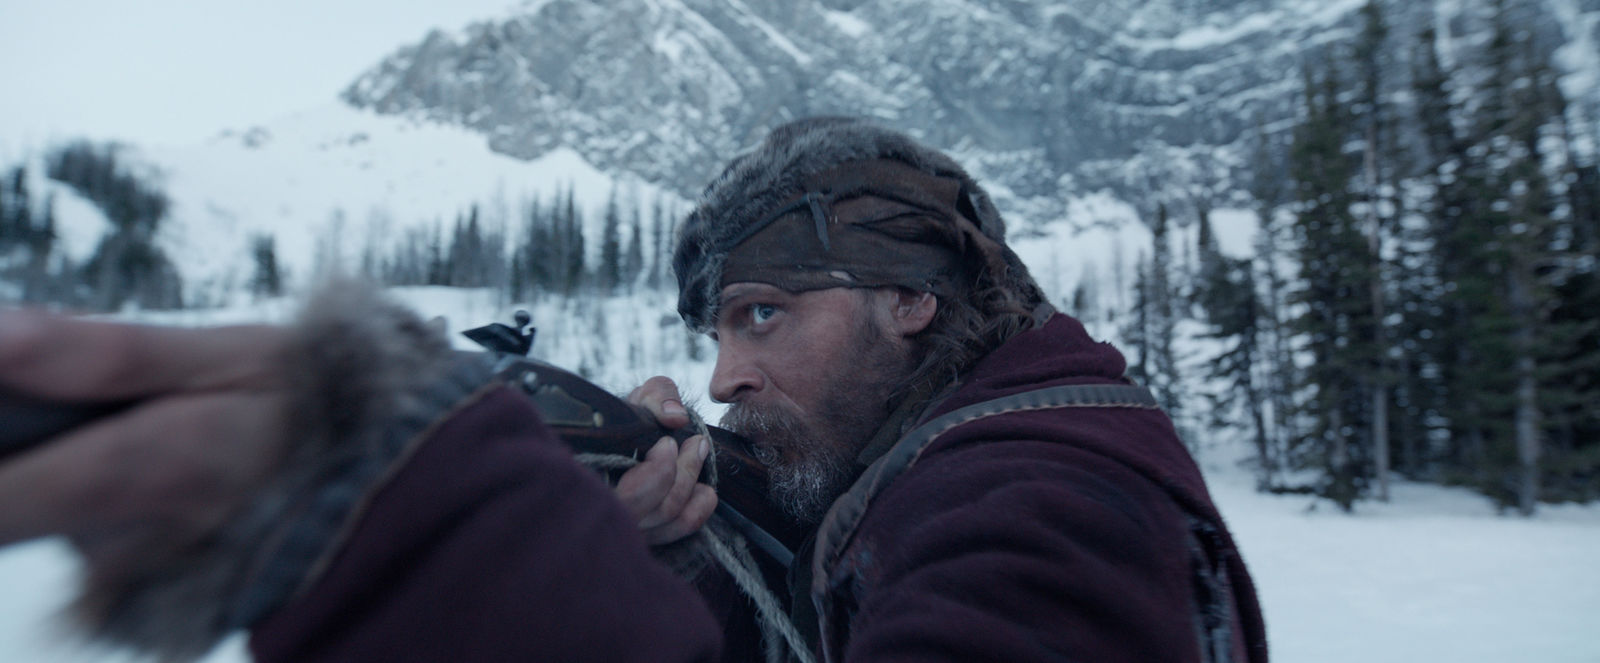 "This photo provided by courtesy of  Twentieth Century Fox shows, Tom Hardy as John Fitzgerald, in a scene from the film, ""The Revenant,"" directed by Alejandro Gonzalez Inarritu. The movie opens in U.S. theaters on Jan. 8, 2016. (Courtesy Twentieth Century Fox via AP)"